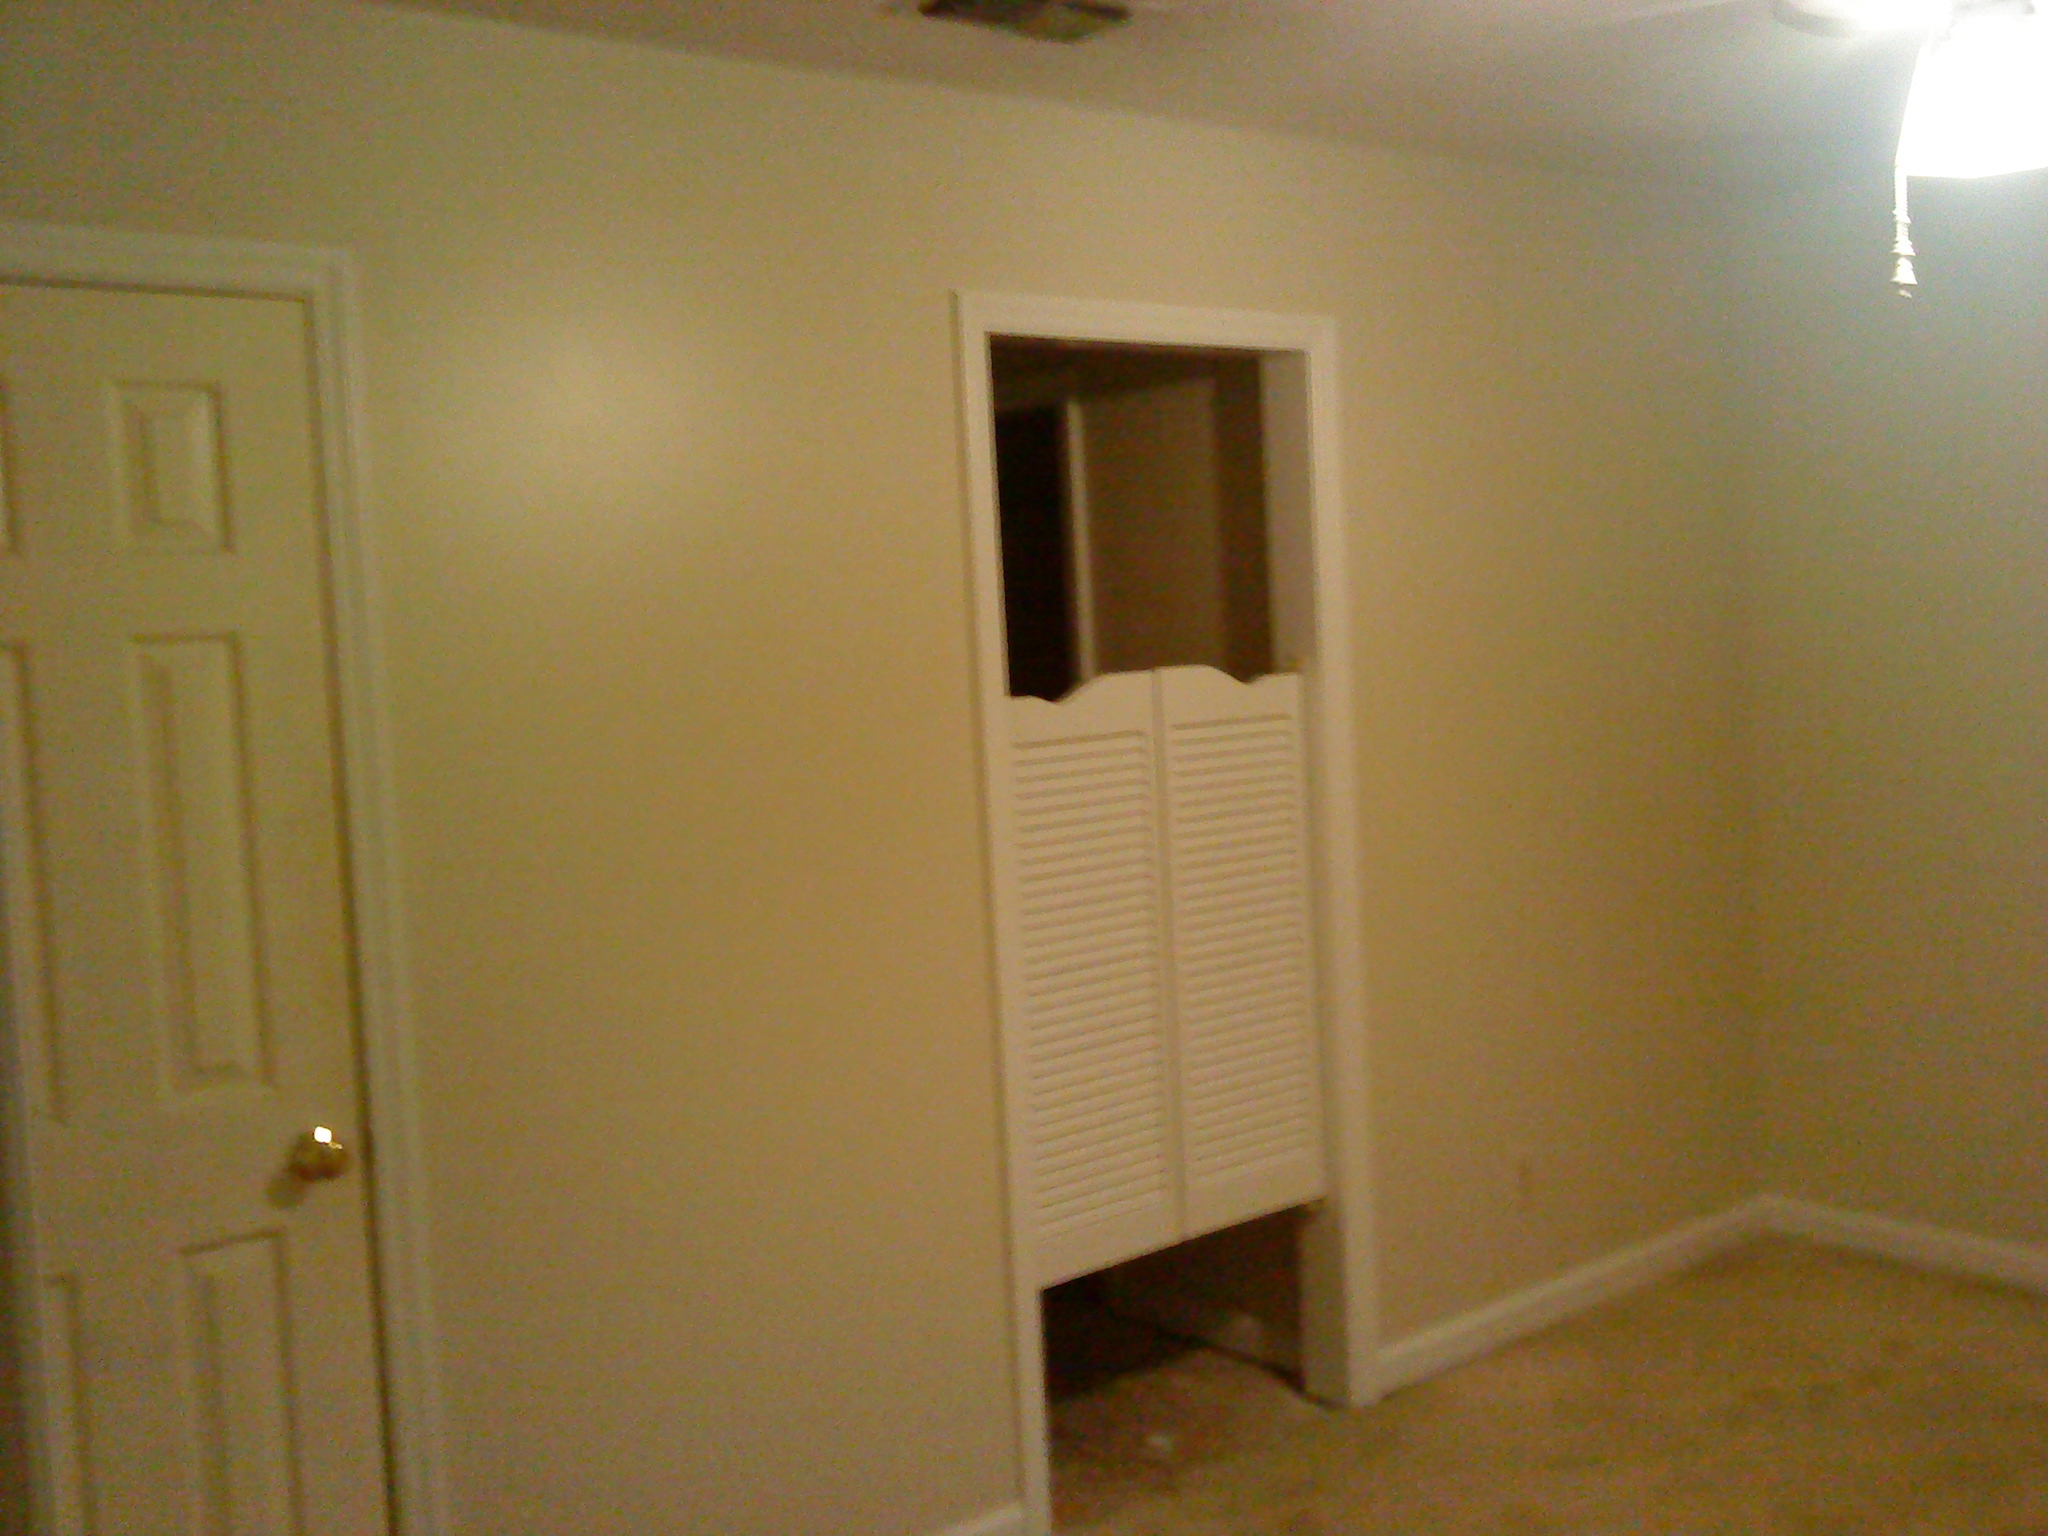 Saloon Doors For Bathroomcorbin home improvement bathroom remodel